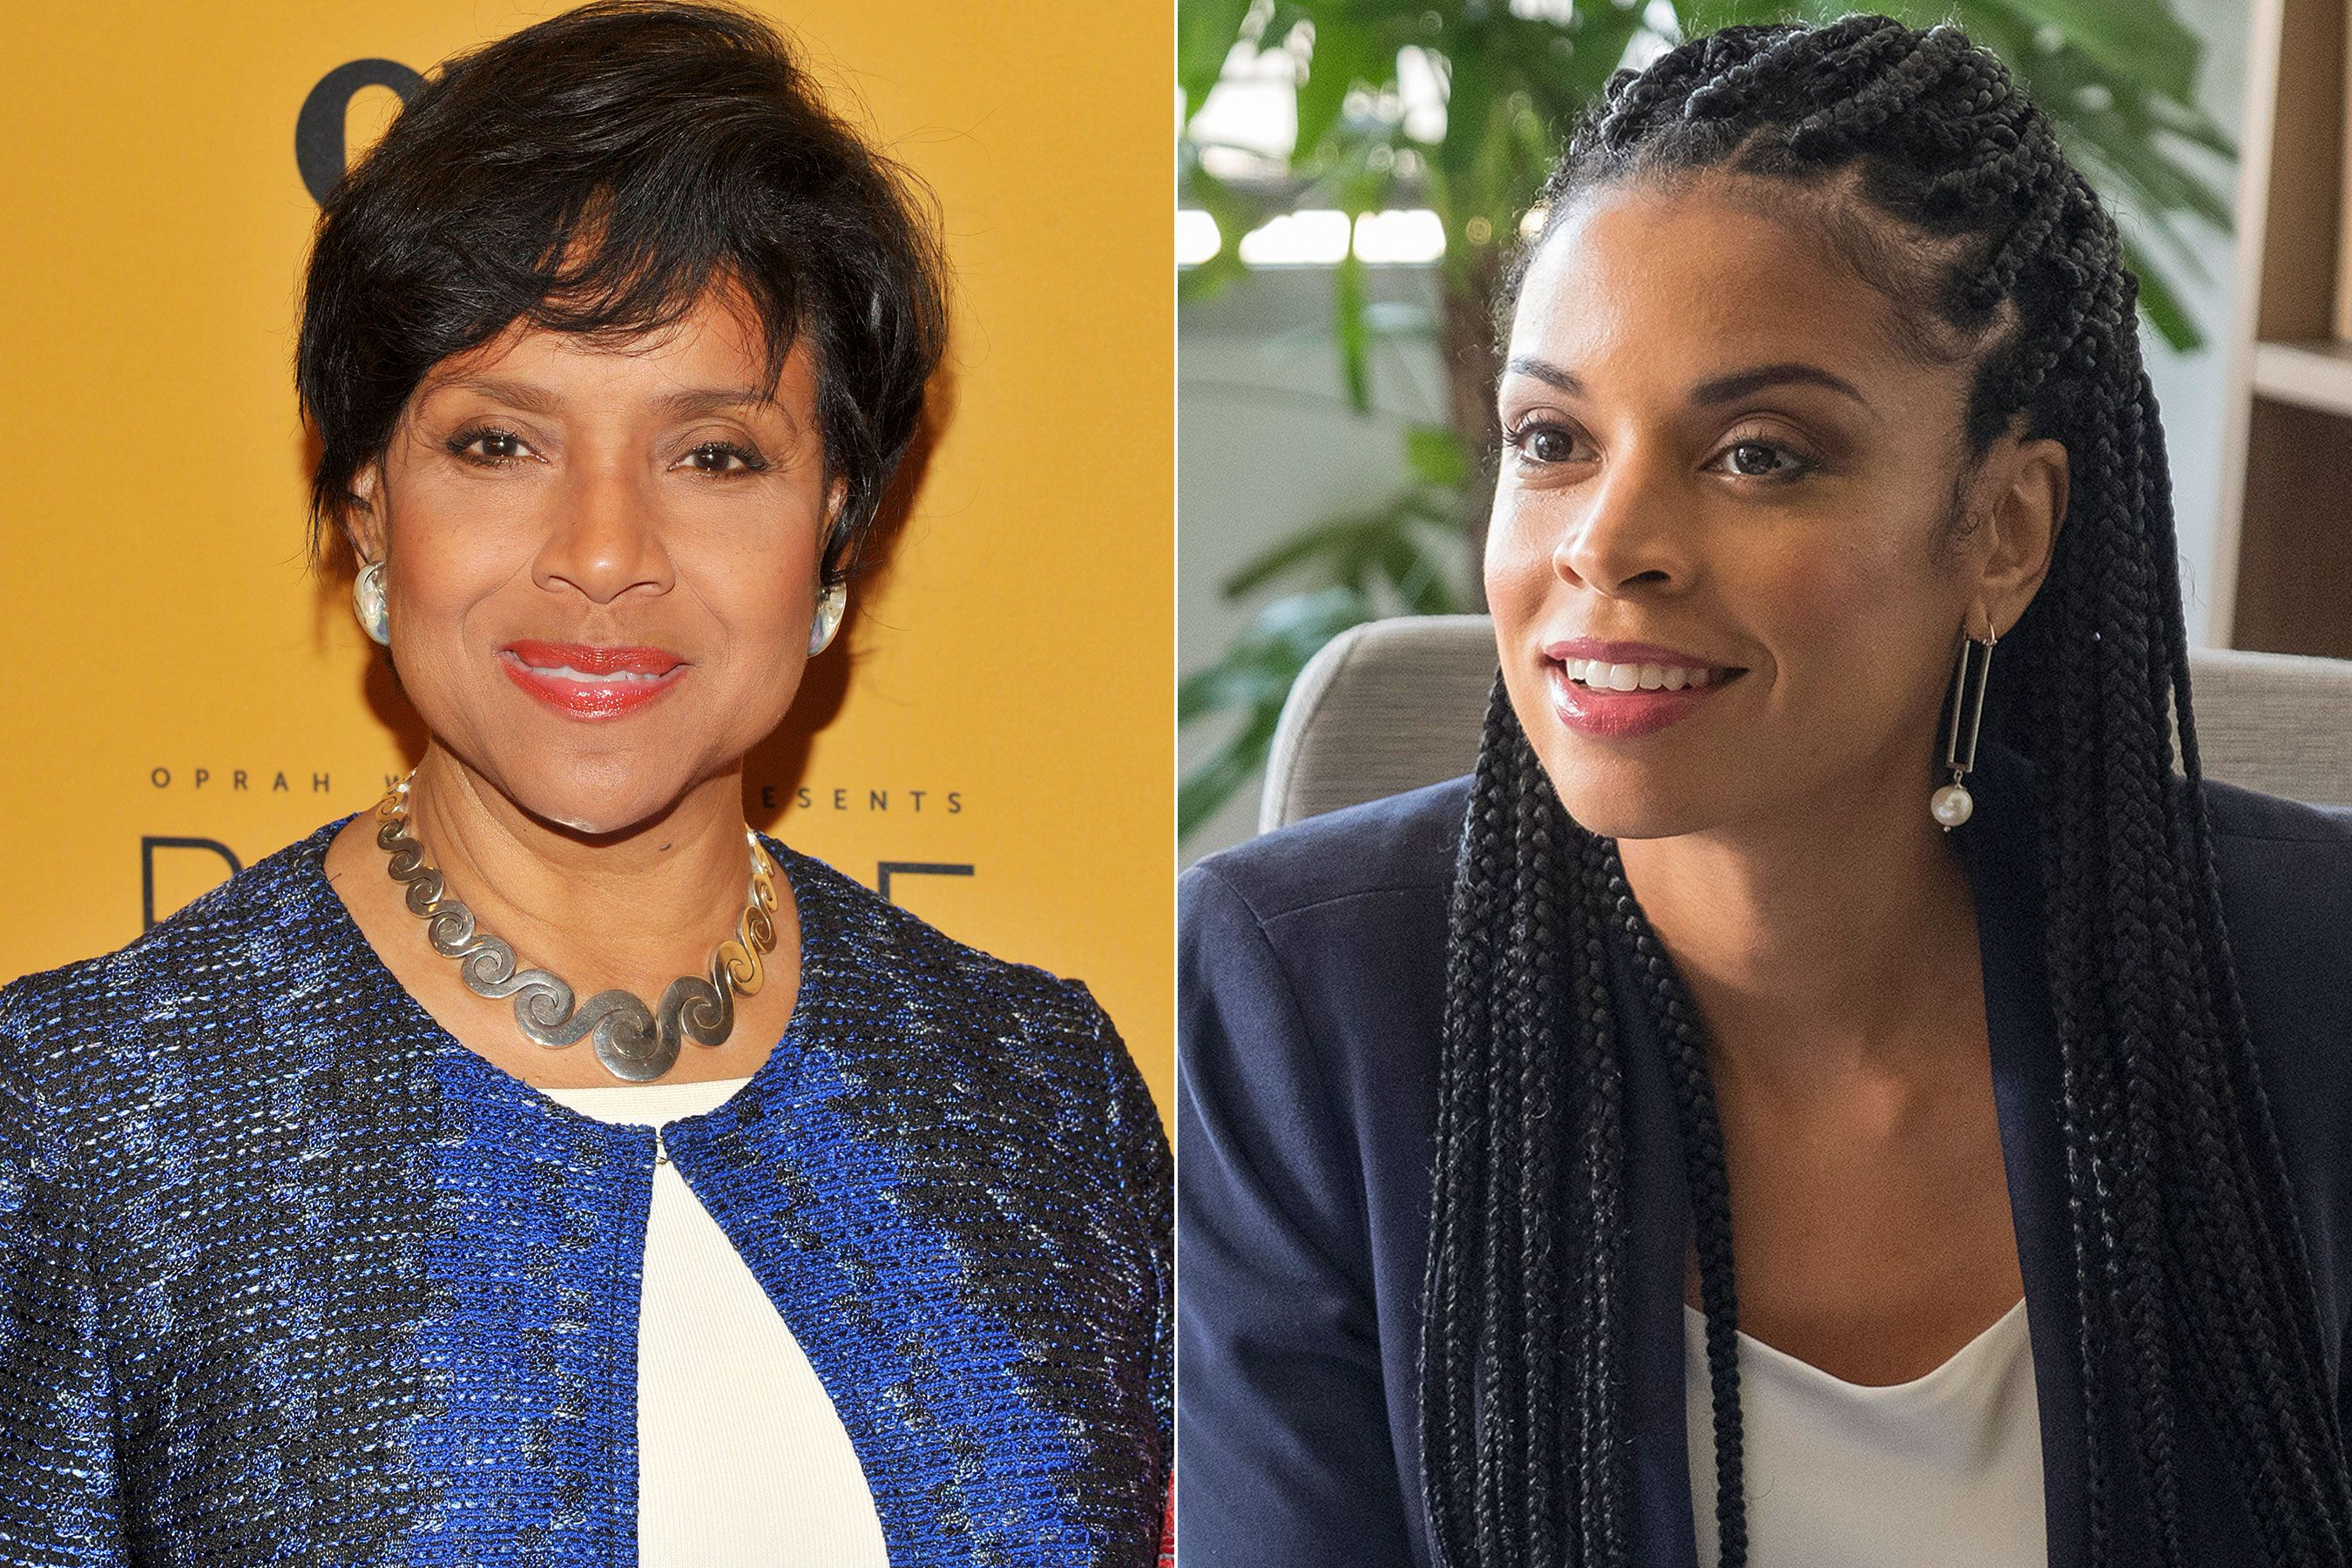 Exclusive This Is Us Casts Phylicia Rashad As Beth S Mother Phylicia Rashad Milo This Is Us The Cosby Show